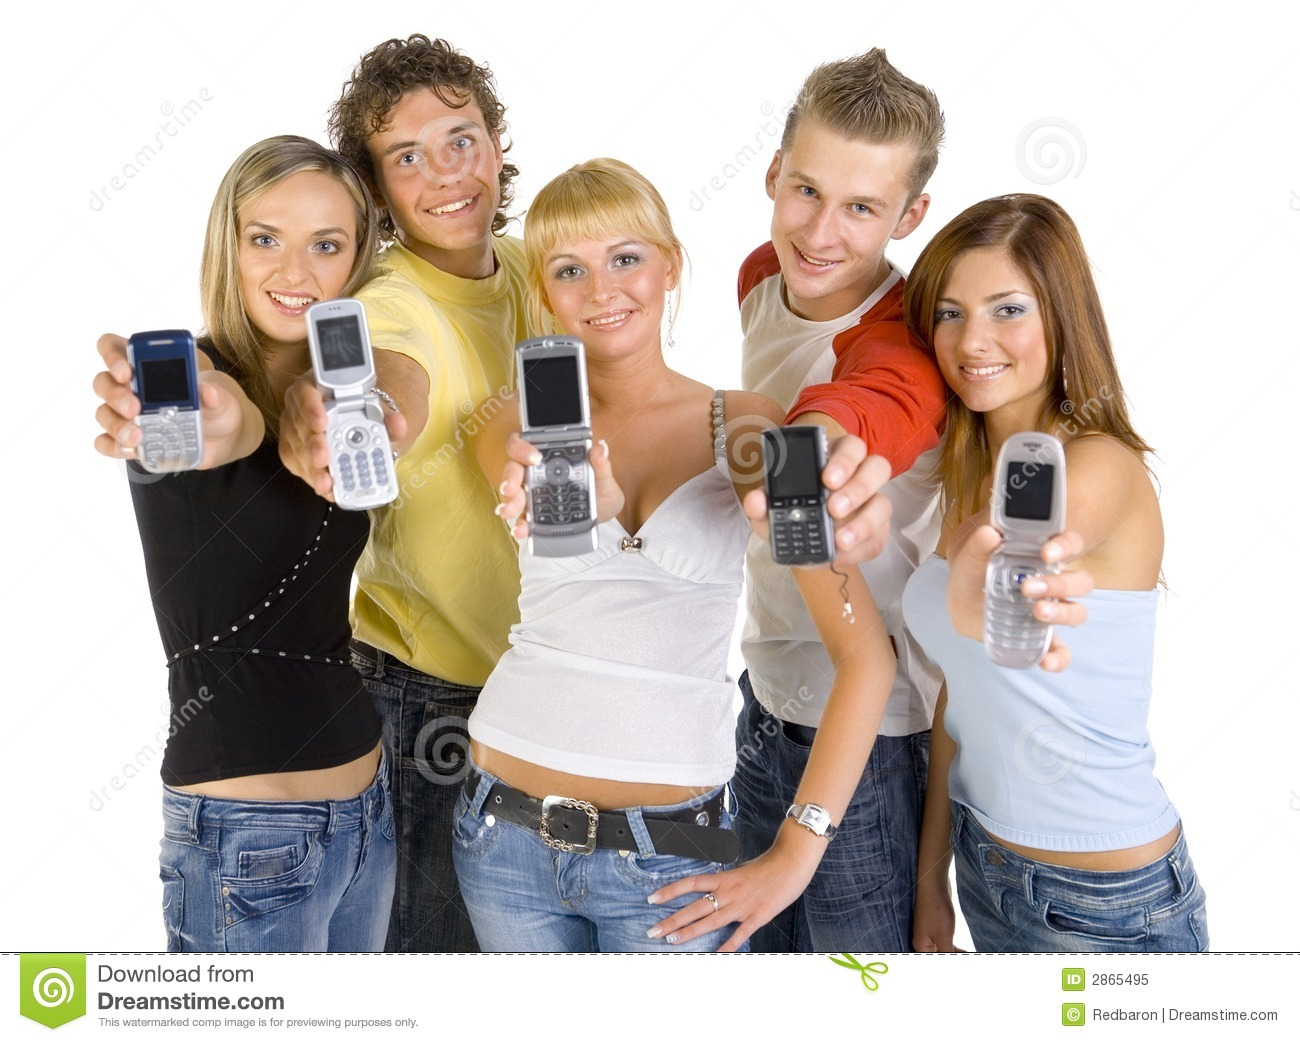 essays on mobile phones and teenagers 22 problem comprehensive research and information has determined that mobile phones have harmful effects on teenagers concerning.